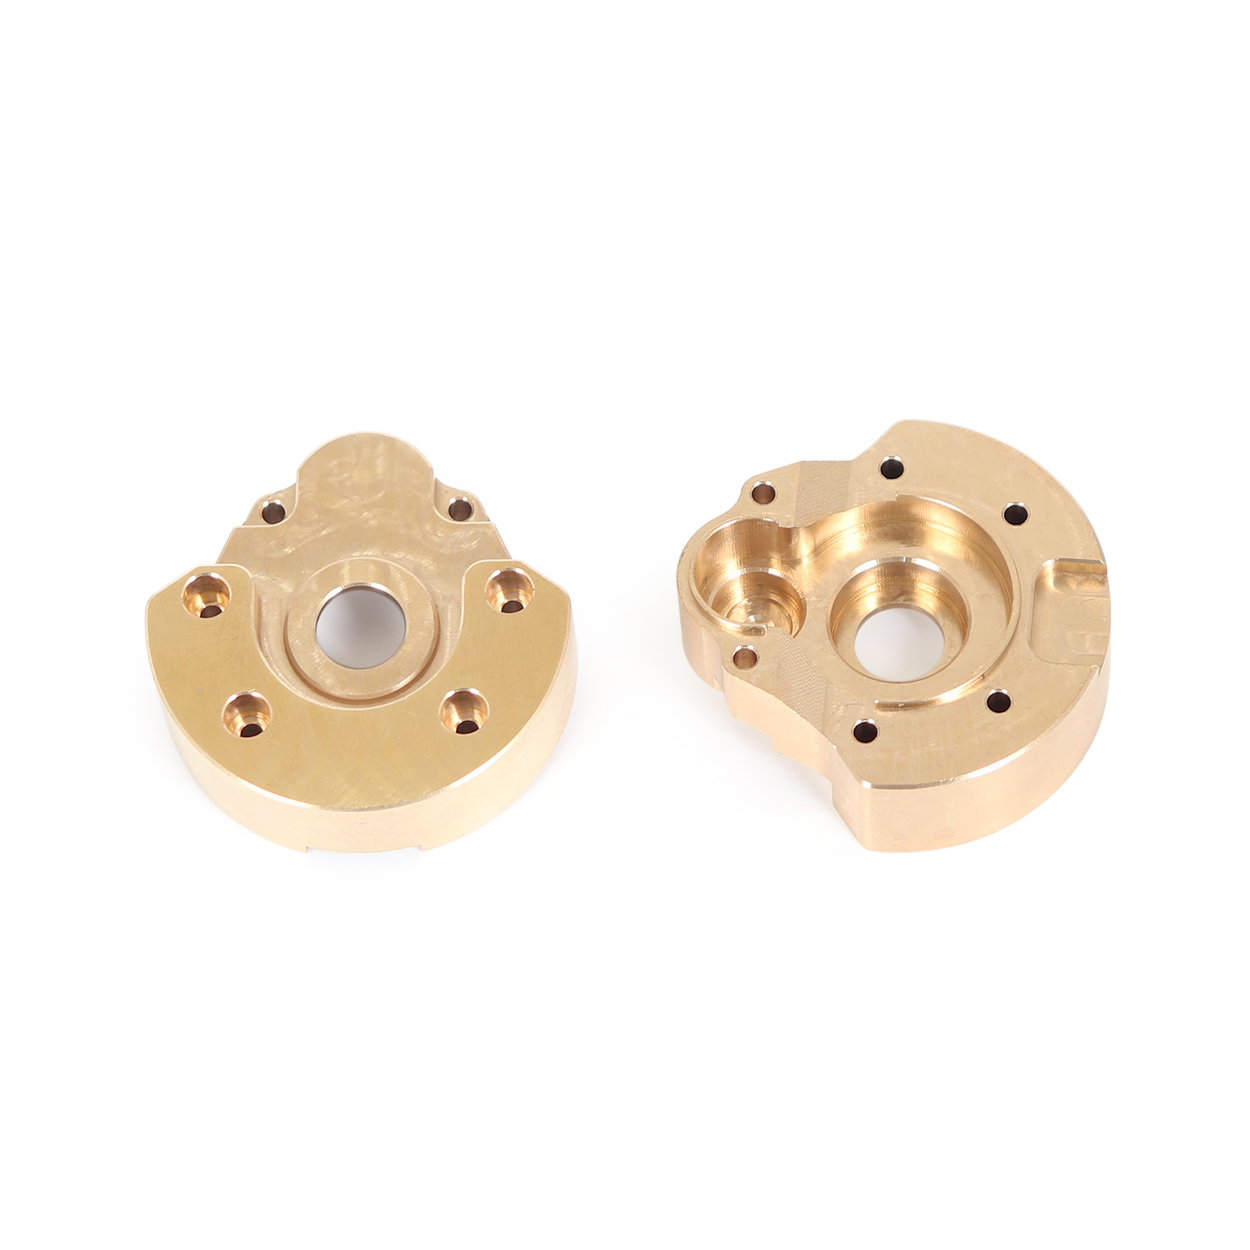 Front Rear Wheel Counterweight Cover Brass Knuckle for Redcat GEN8 RC Car Parts Accessories Gold